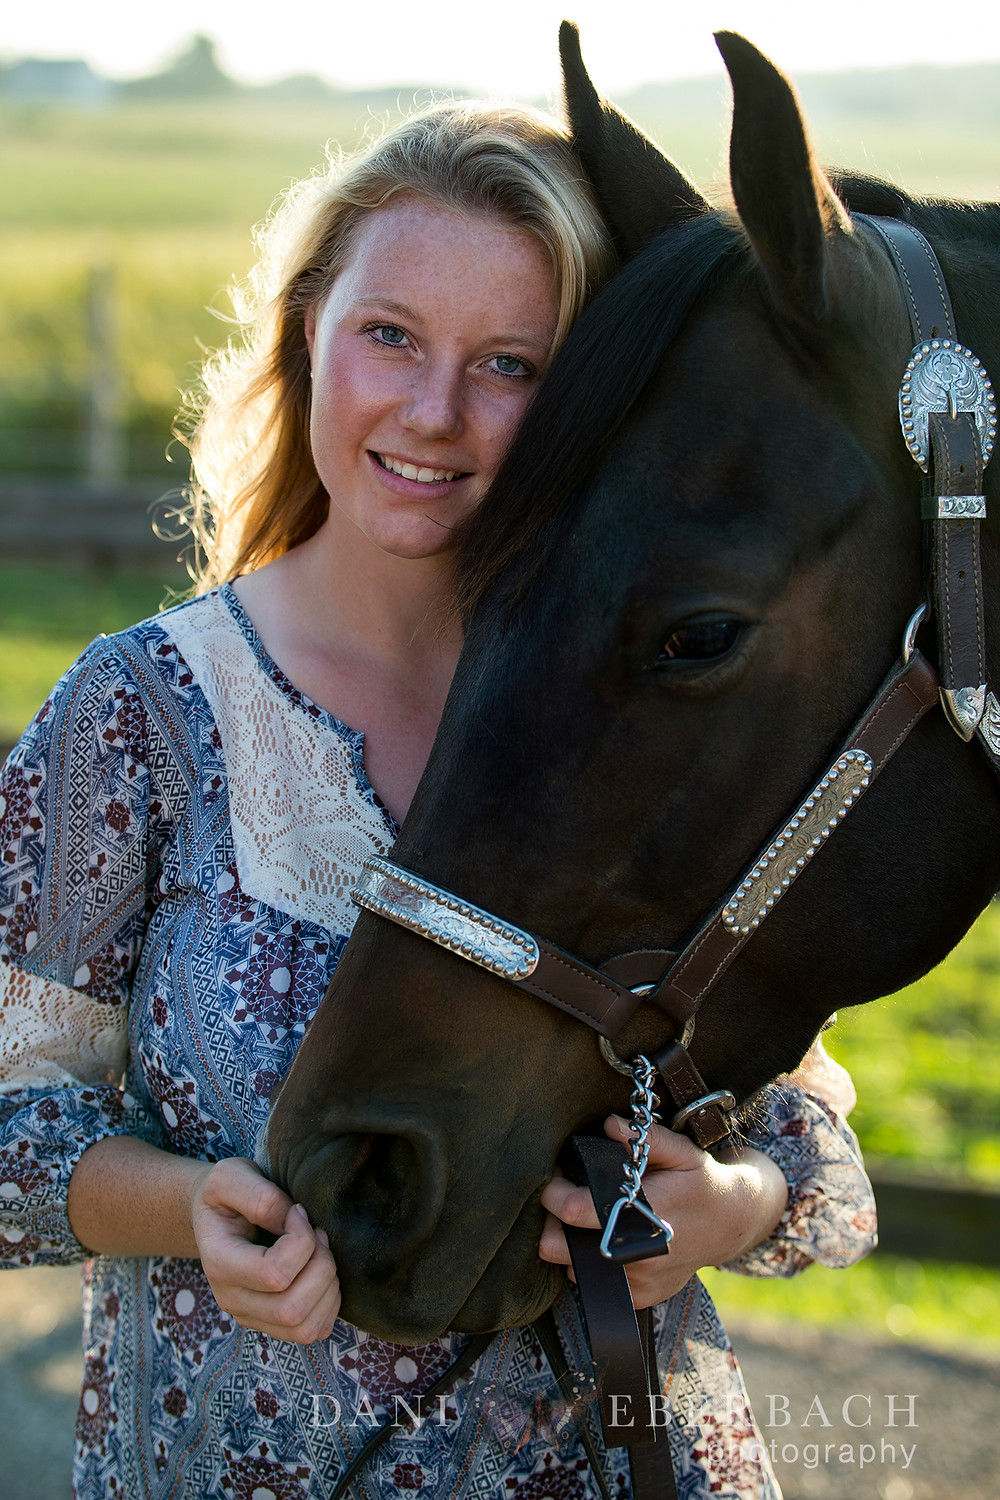 Senior portrait of young woman with horse